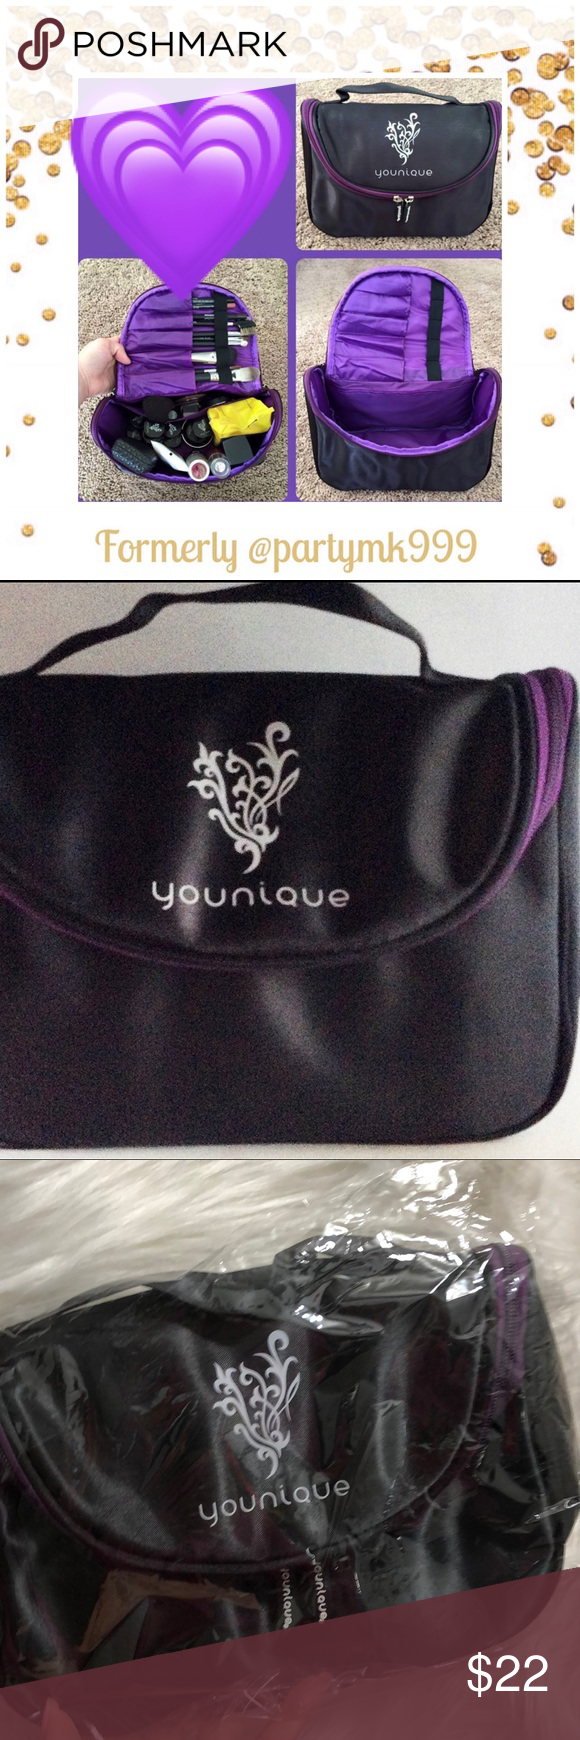 Younique Collectors Cosmetic Bag RETIRED NEW Boutique